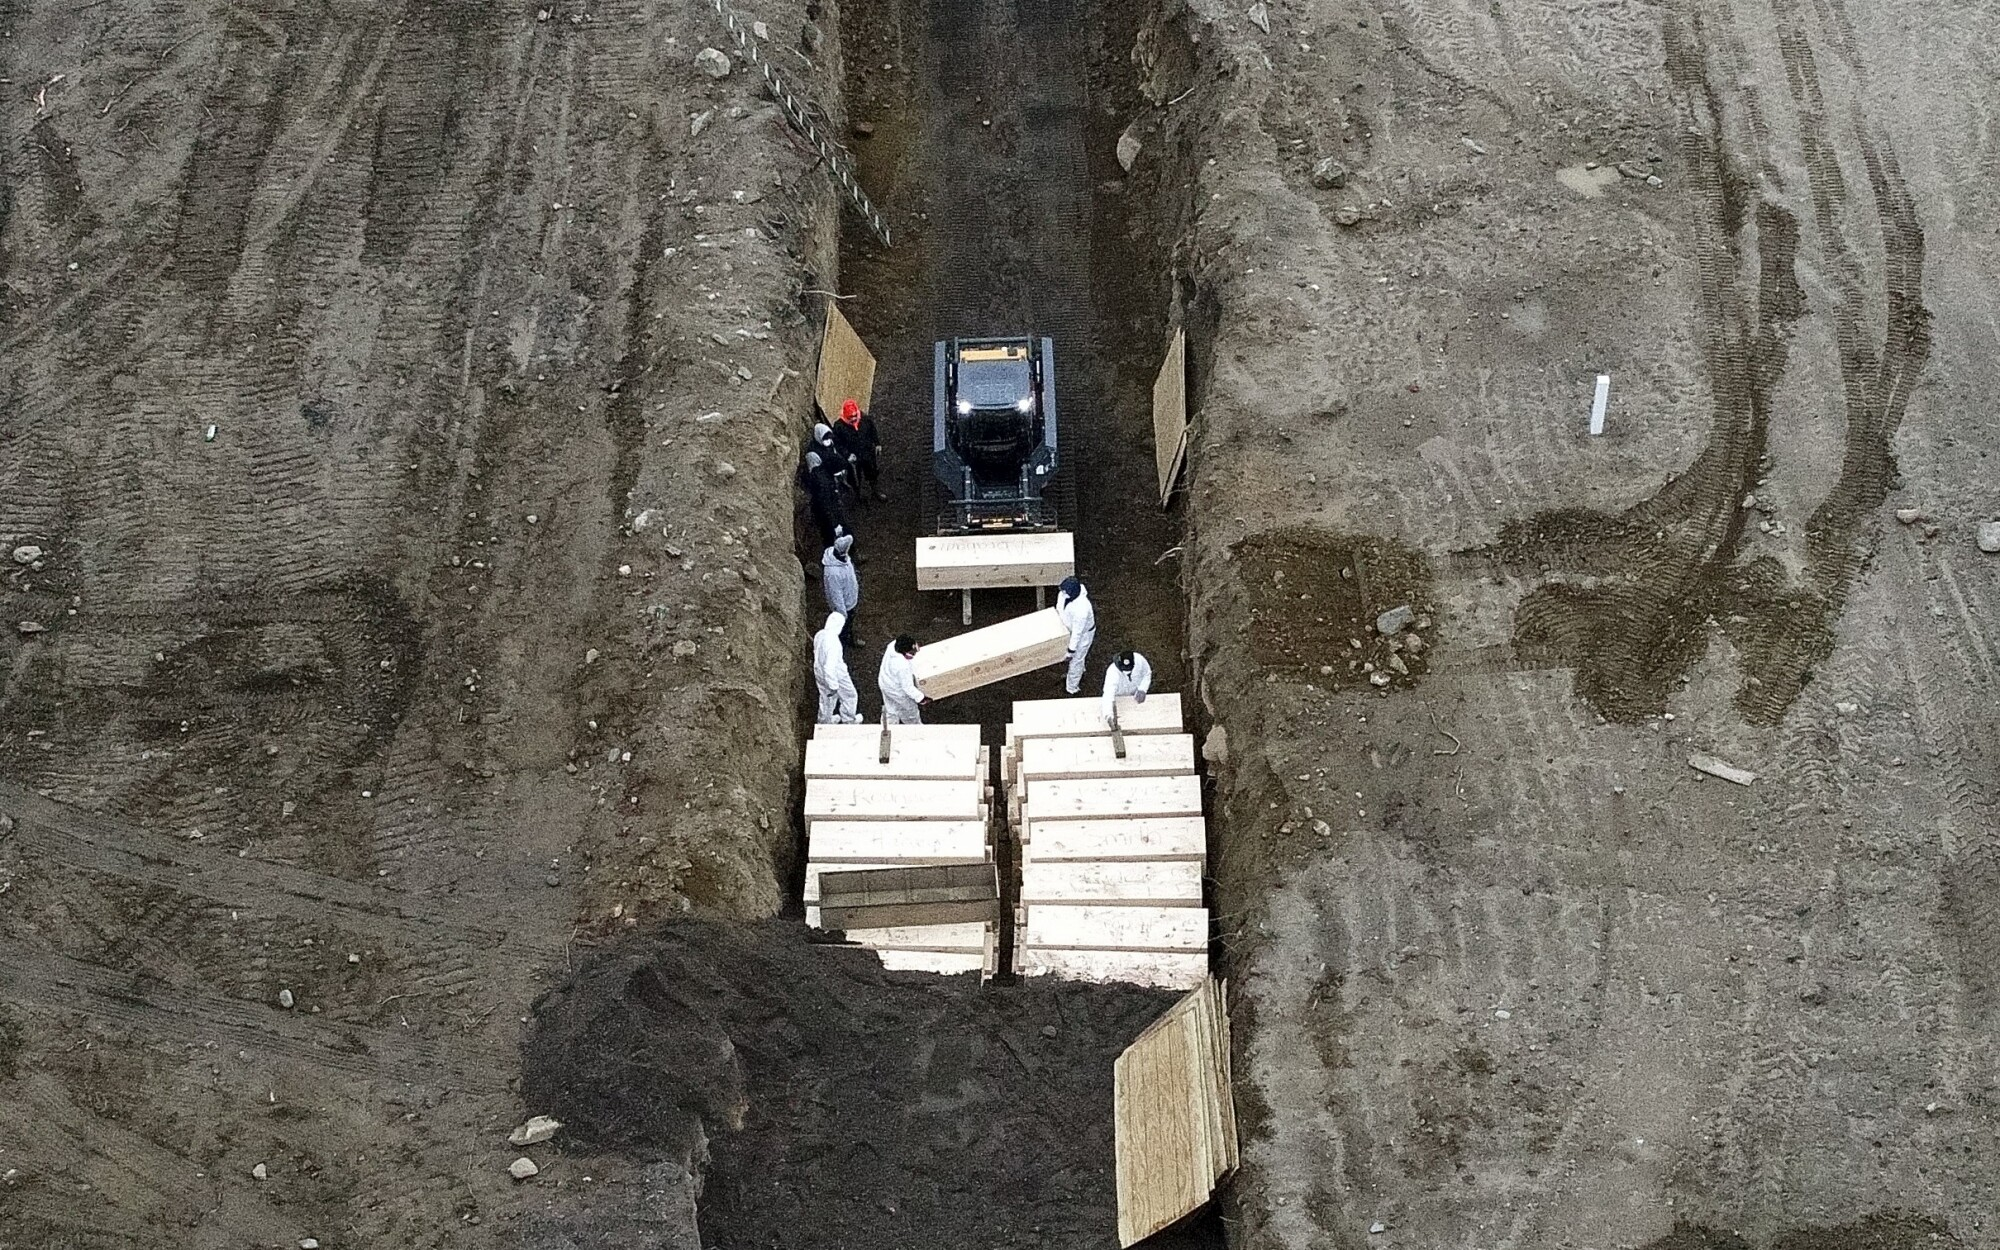 Workers bury bodies in a trench on New York City's Hart Island